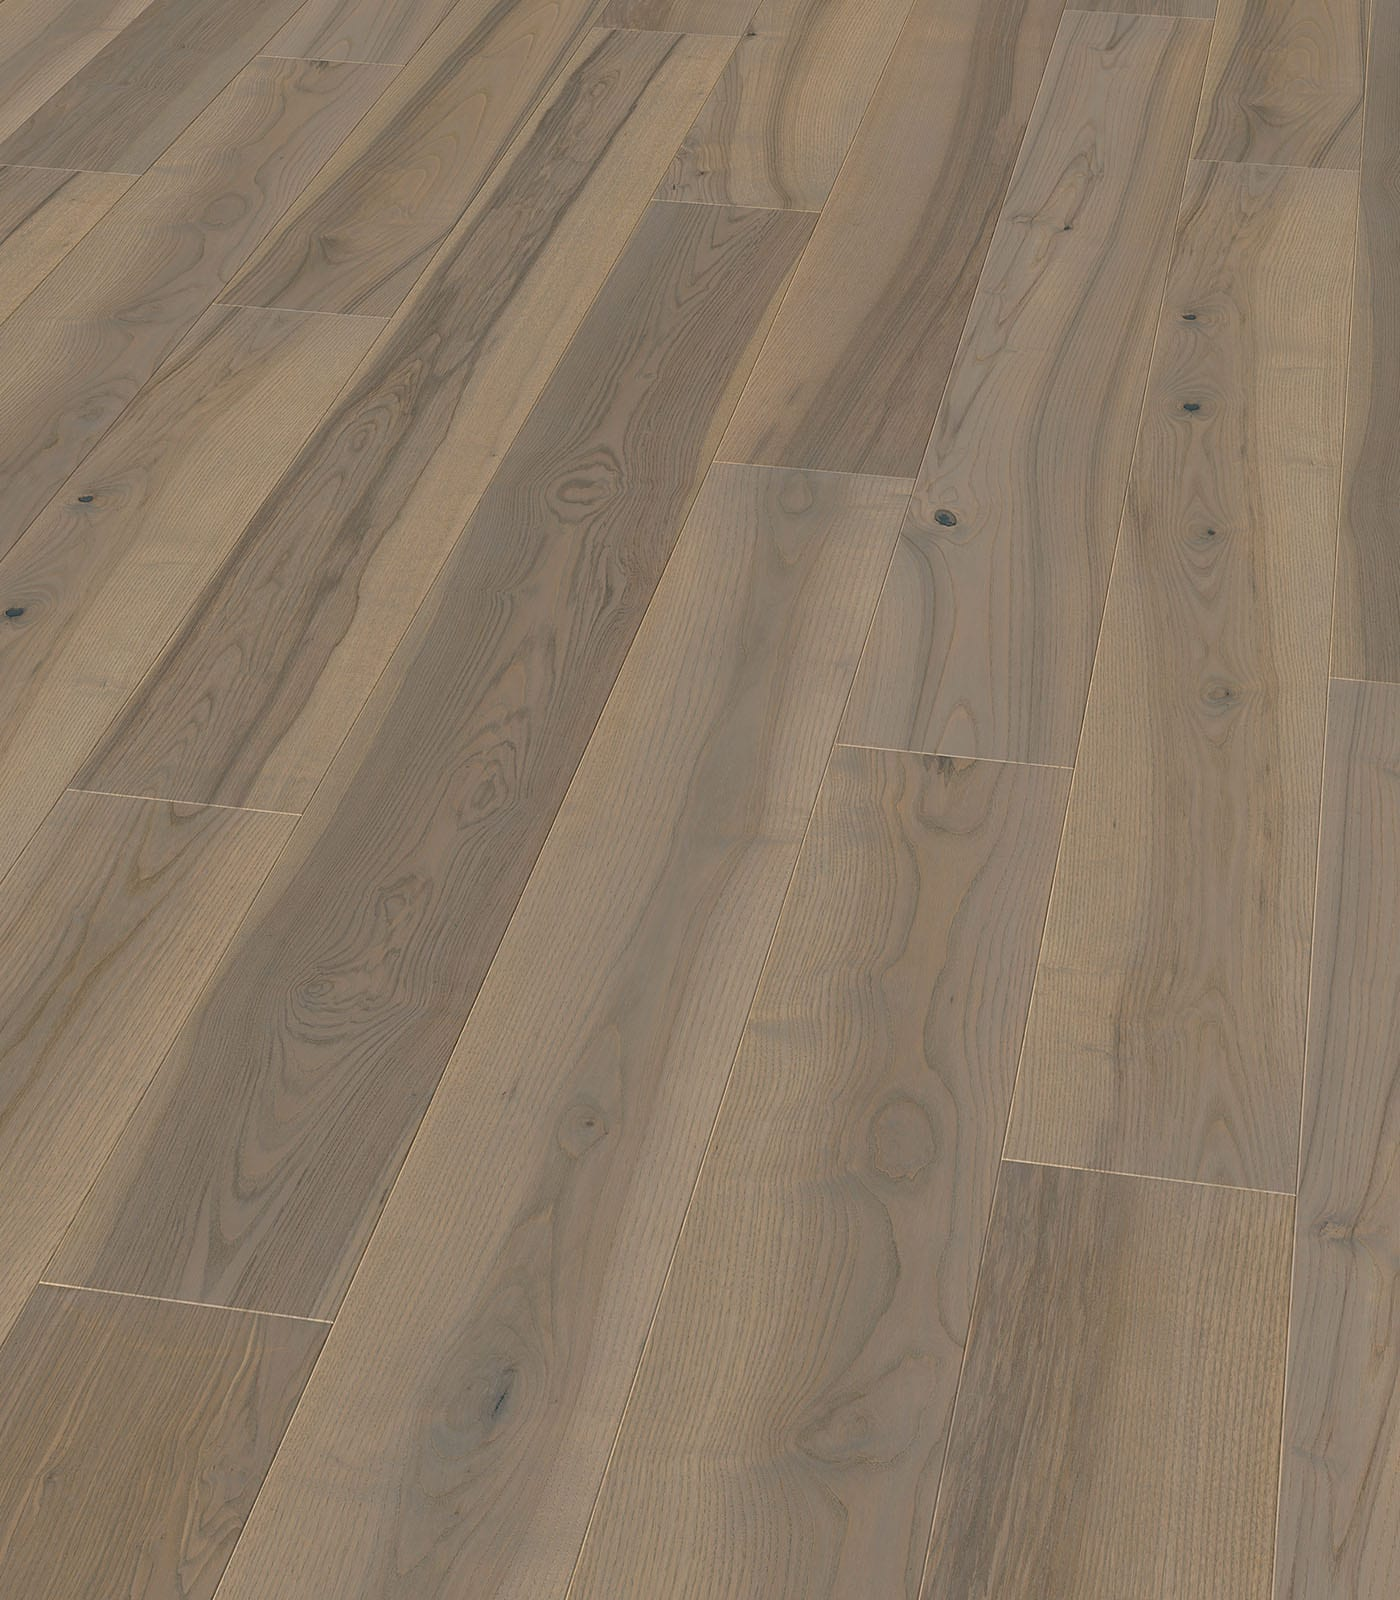 Barcelona - European Ash Floors - After Oak Collection - Angle